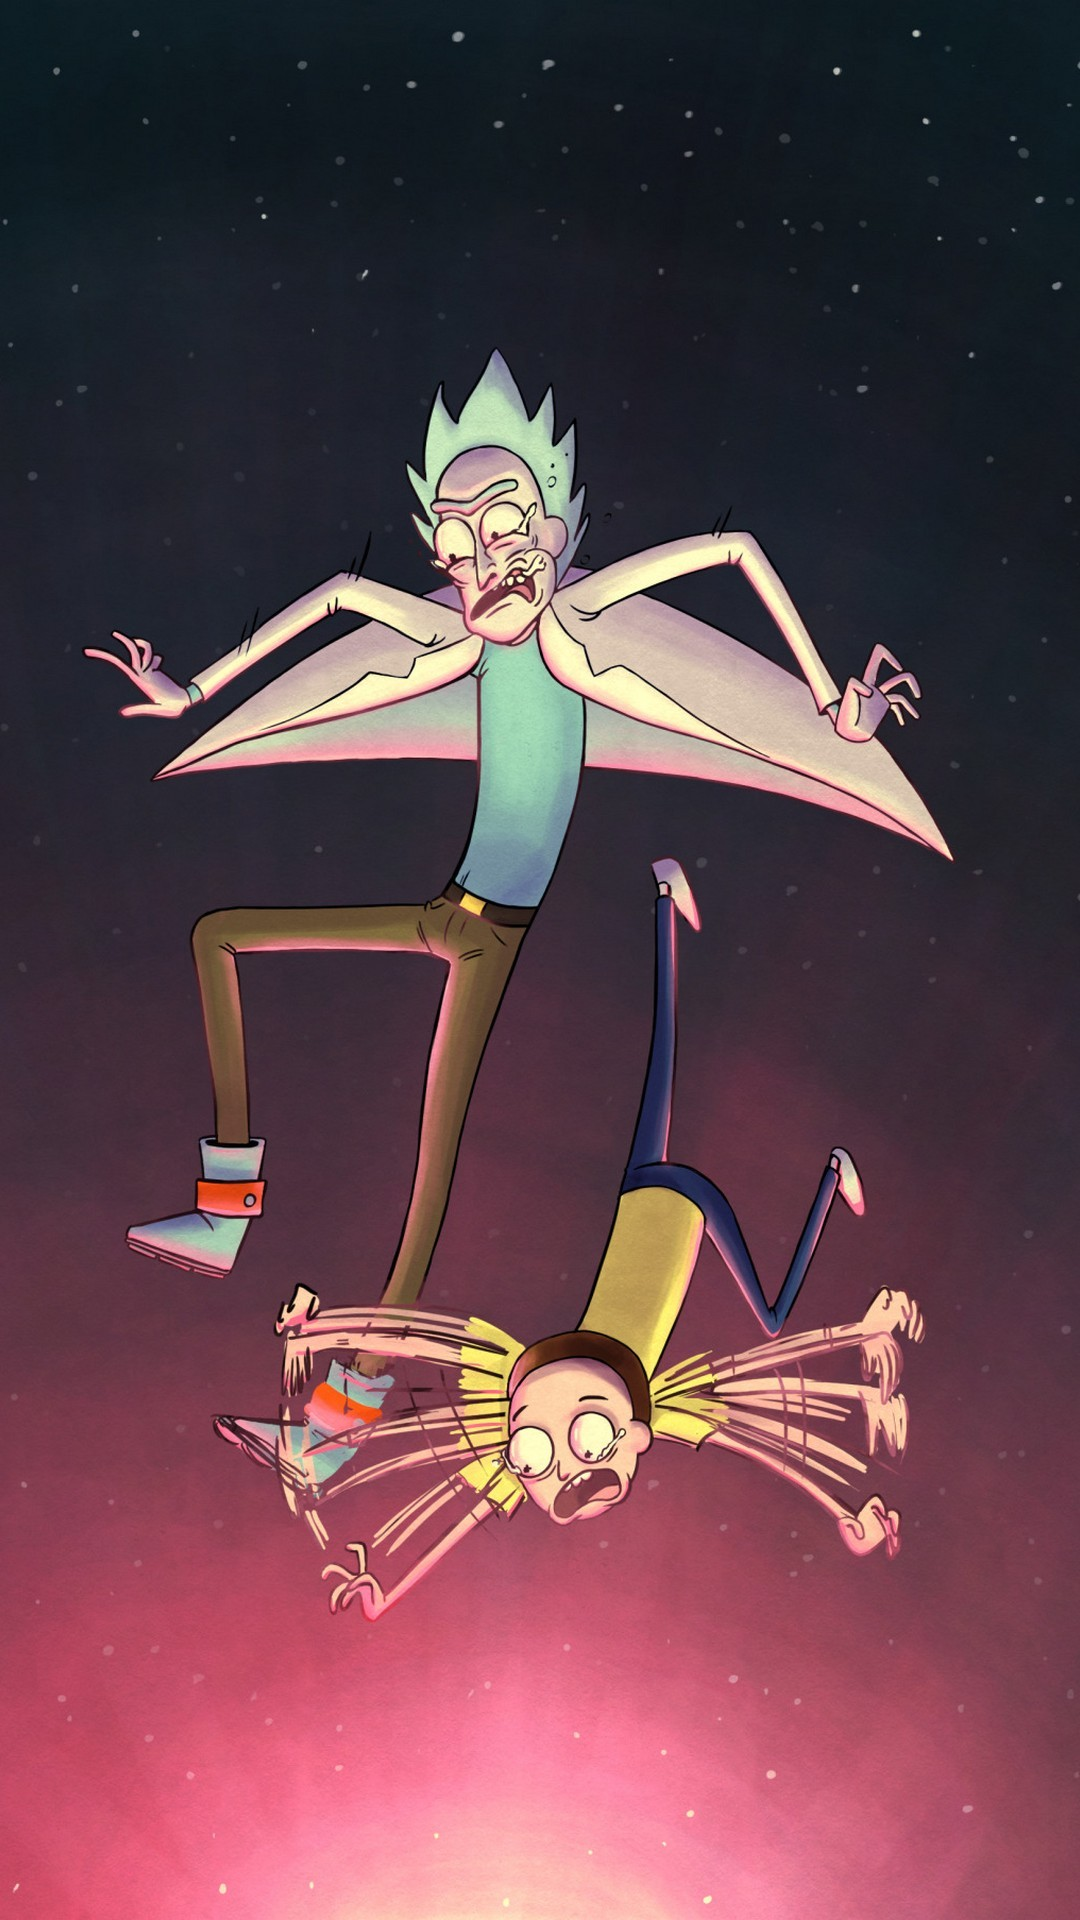 Rick and Morty HD Wallpaper For iPhone   2018 Cute Screensavers Rick and Morty HD Wallpaper For iPhone with image resolution 1080x1920  pixel  You can use